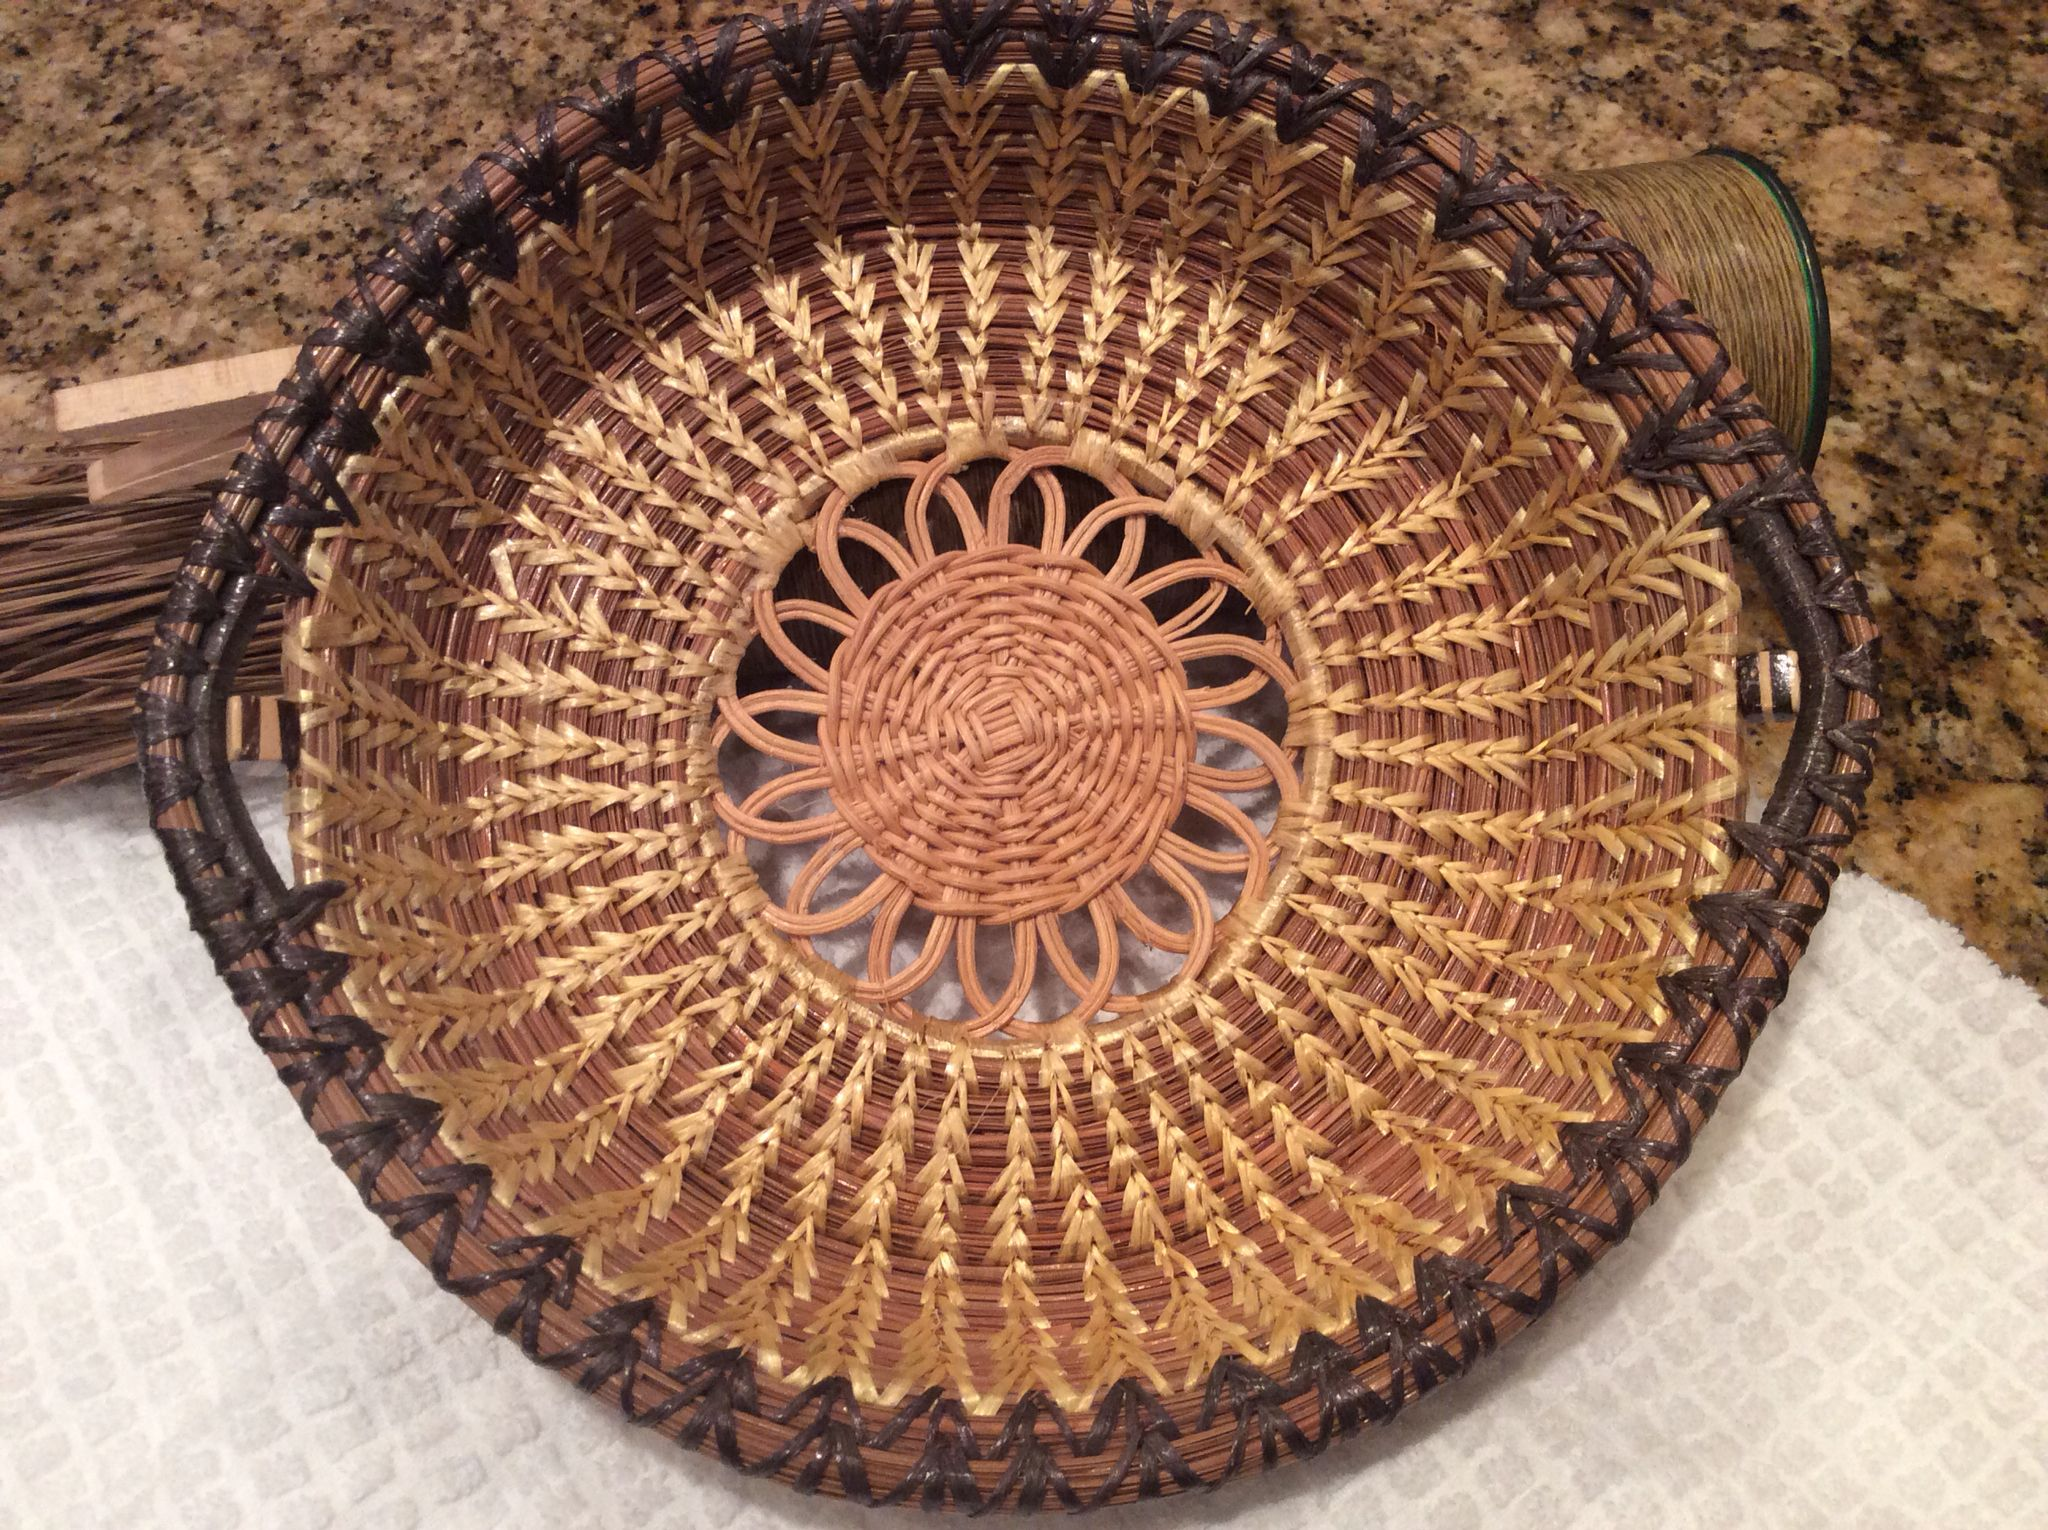 Pine Needle Pie Plate Holder made By Lilli Lee & Pine Needle Pie Plate Holder made By Lilli Lee | Pine needle baskets ...